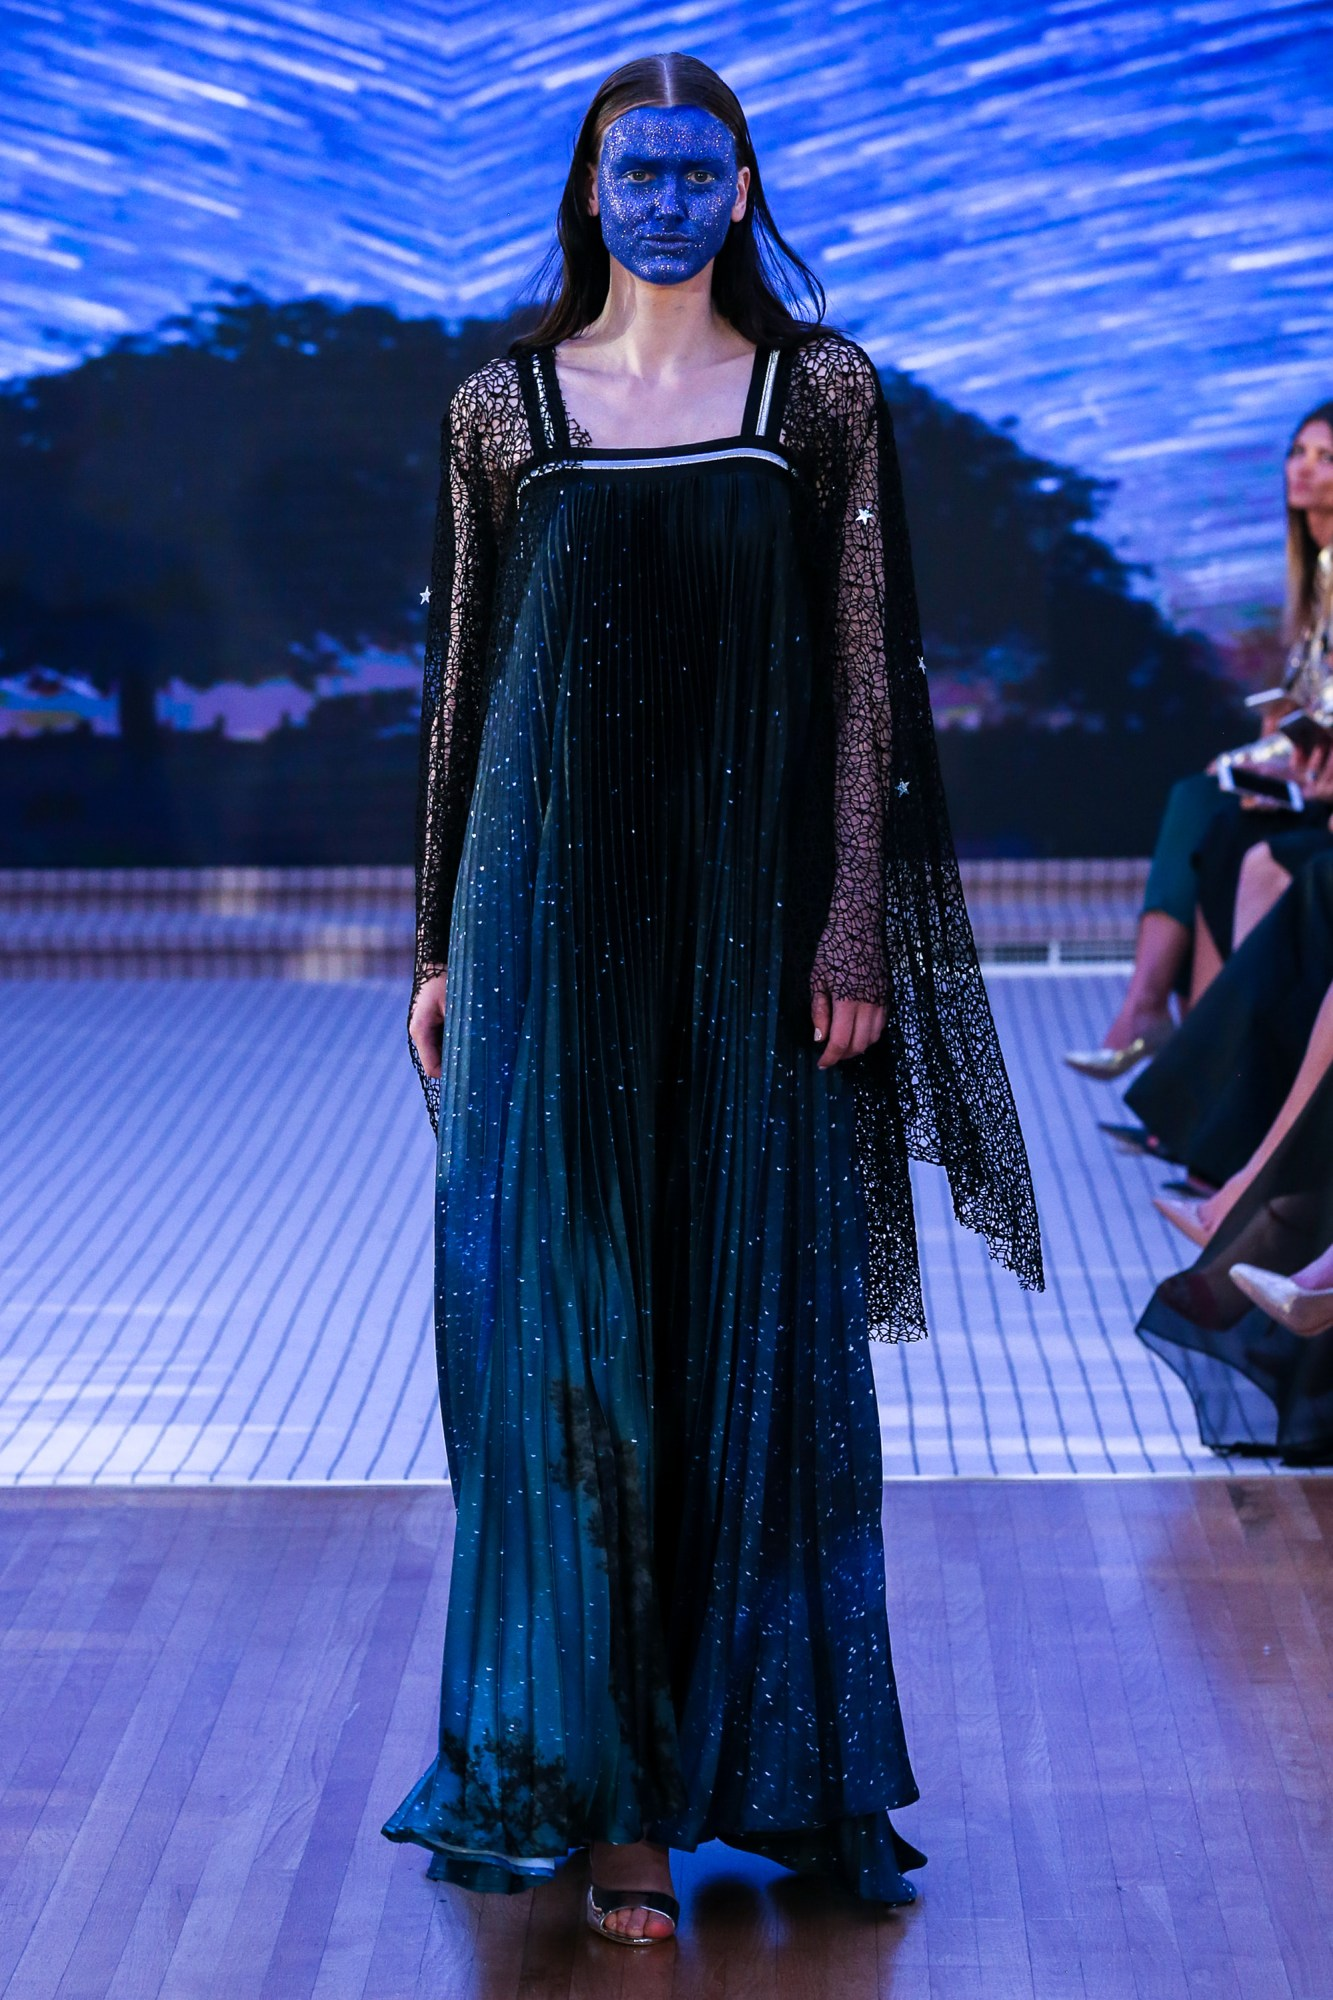 Ilse Jara Resort Fall Winter 2018 Collection Dubai Fashion Week